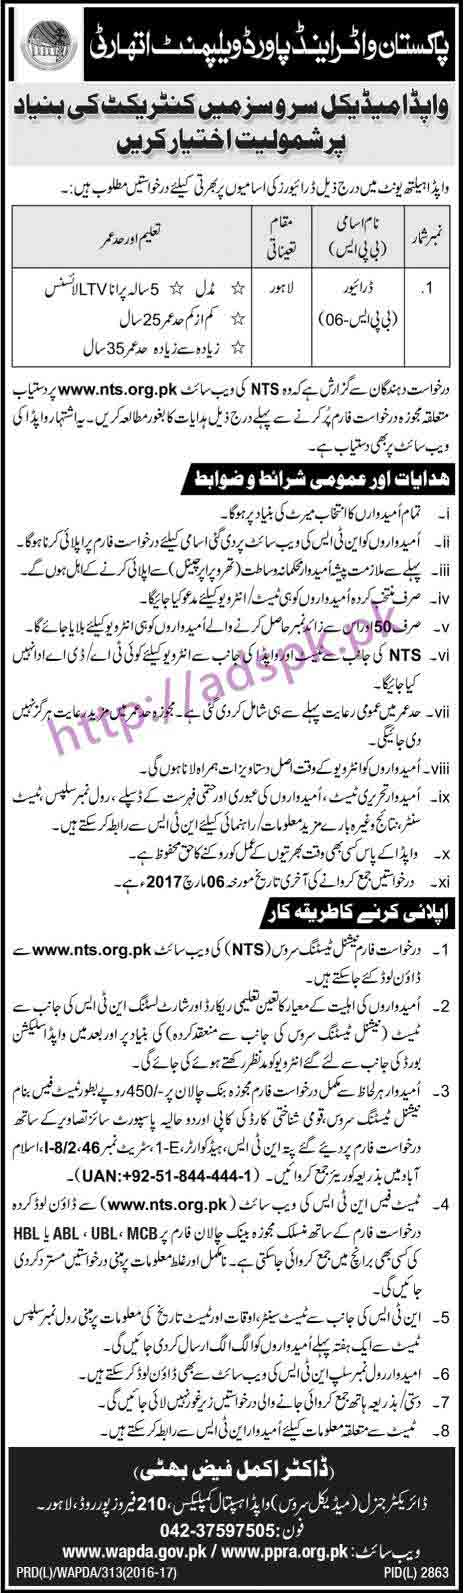 NTS New Career Jobs WAPDA Medical Services Lahore Jobs Test Syllabus Paper for Driver (BPS-06) Application Form Deadline 06-03-2017 Apply Now by NTS Pakistan